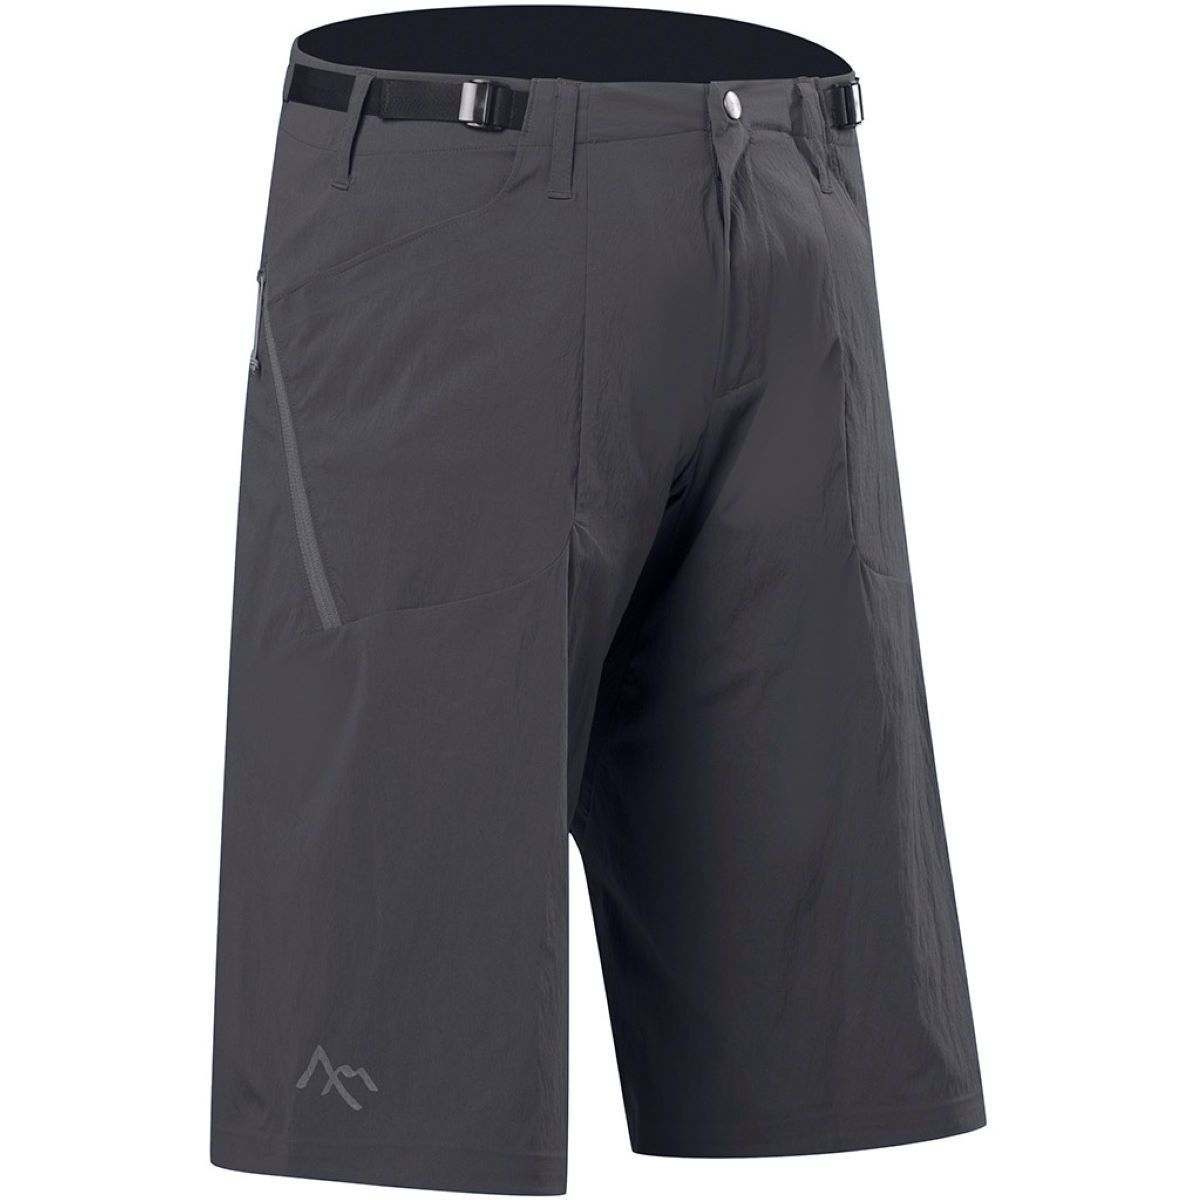 Short 7Mesh Glidepath - S Bad Ash Grey Shorts VTT